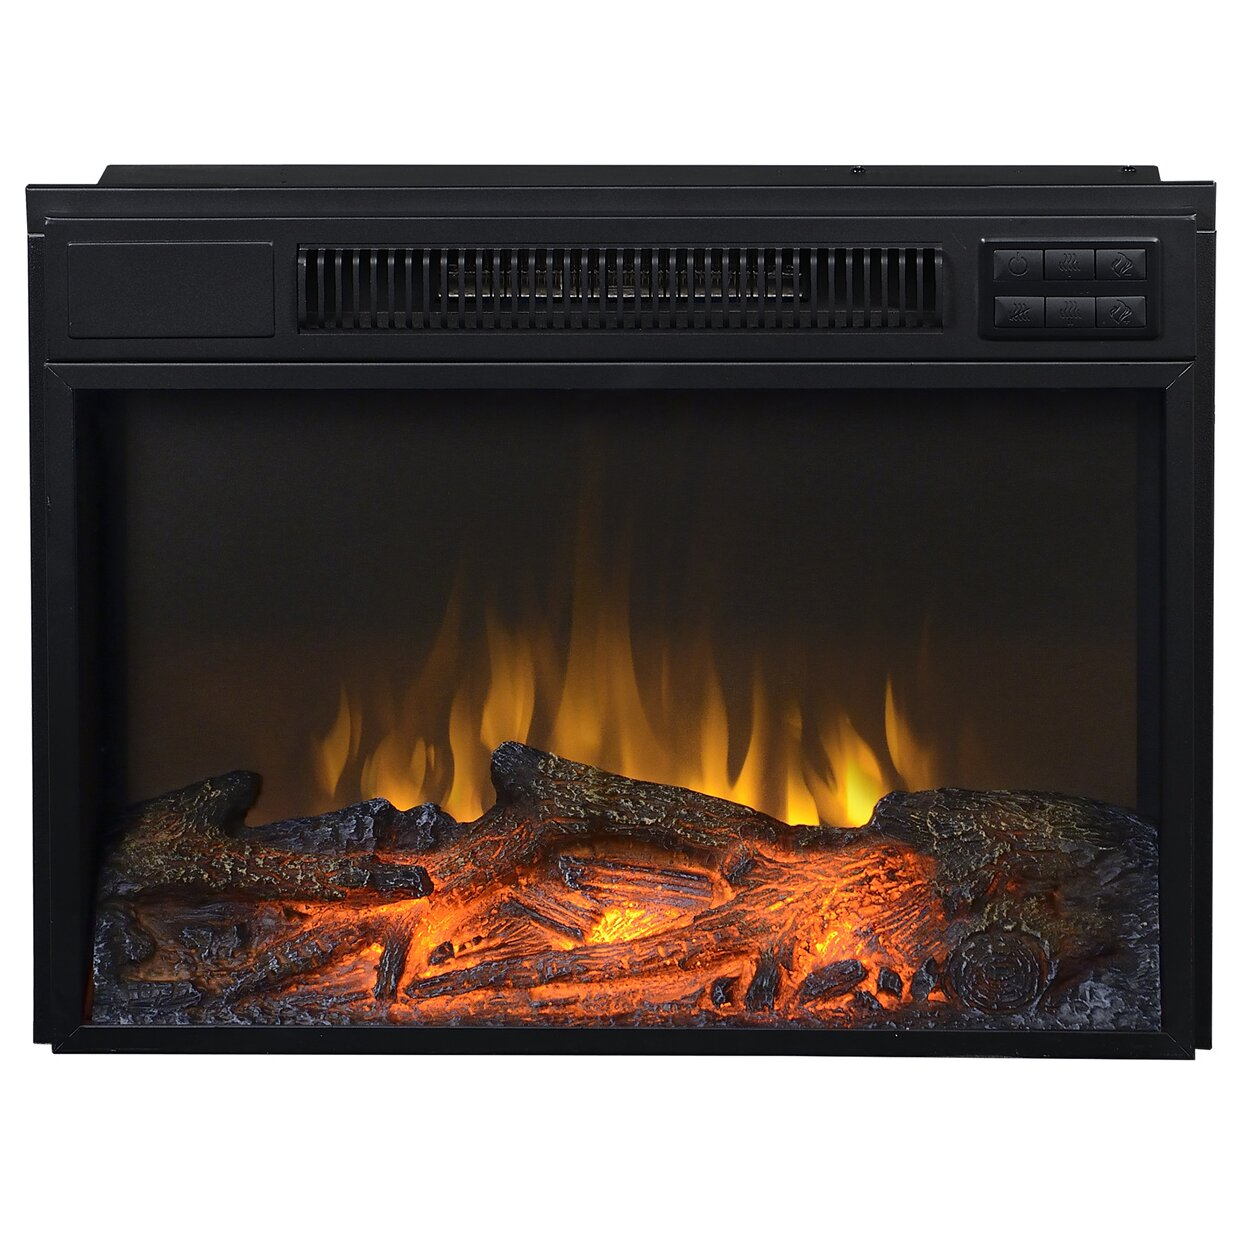 homestar flamelux electric fireplace insert reviews